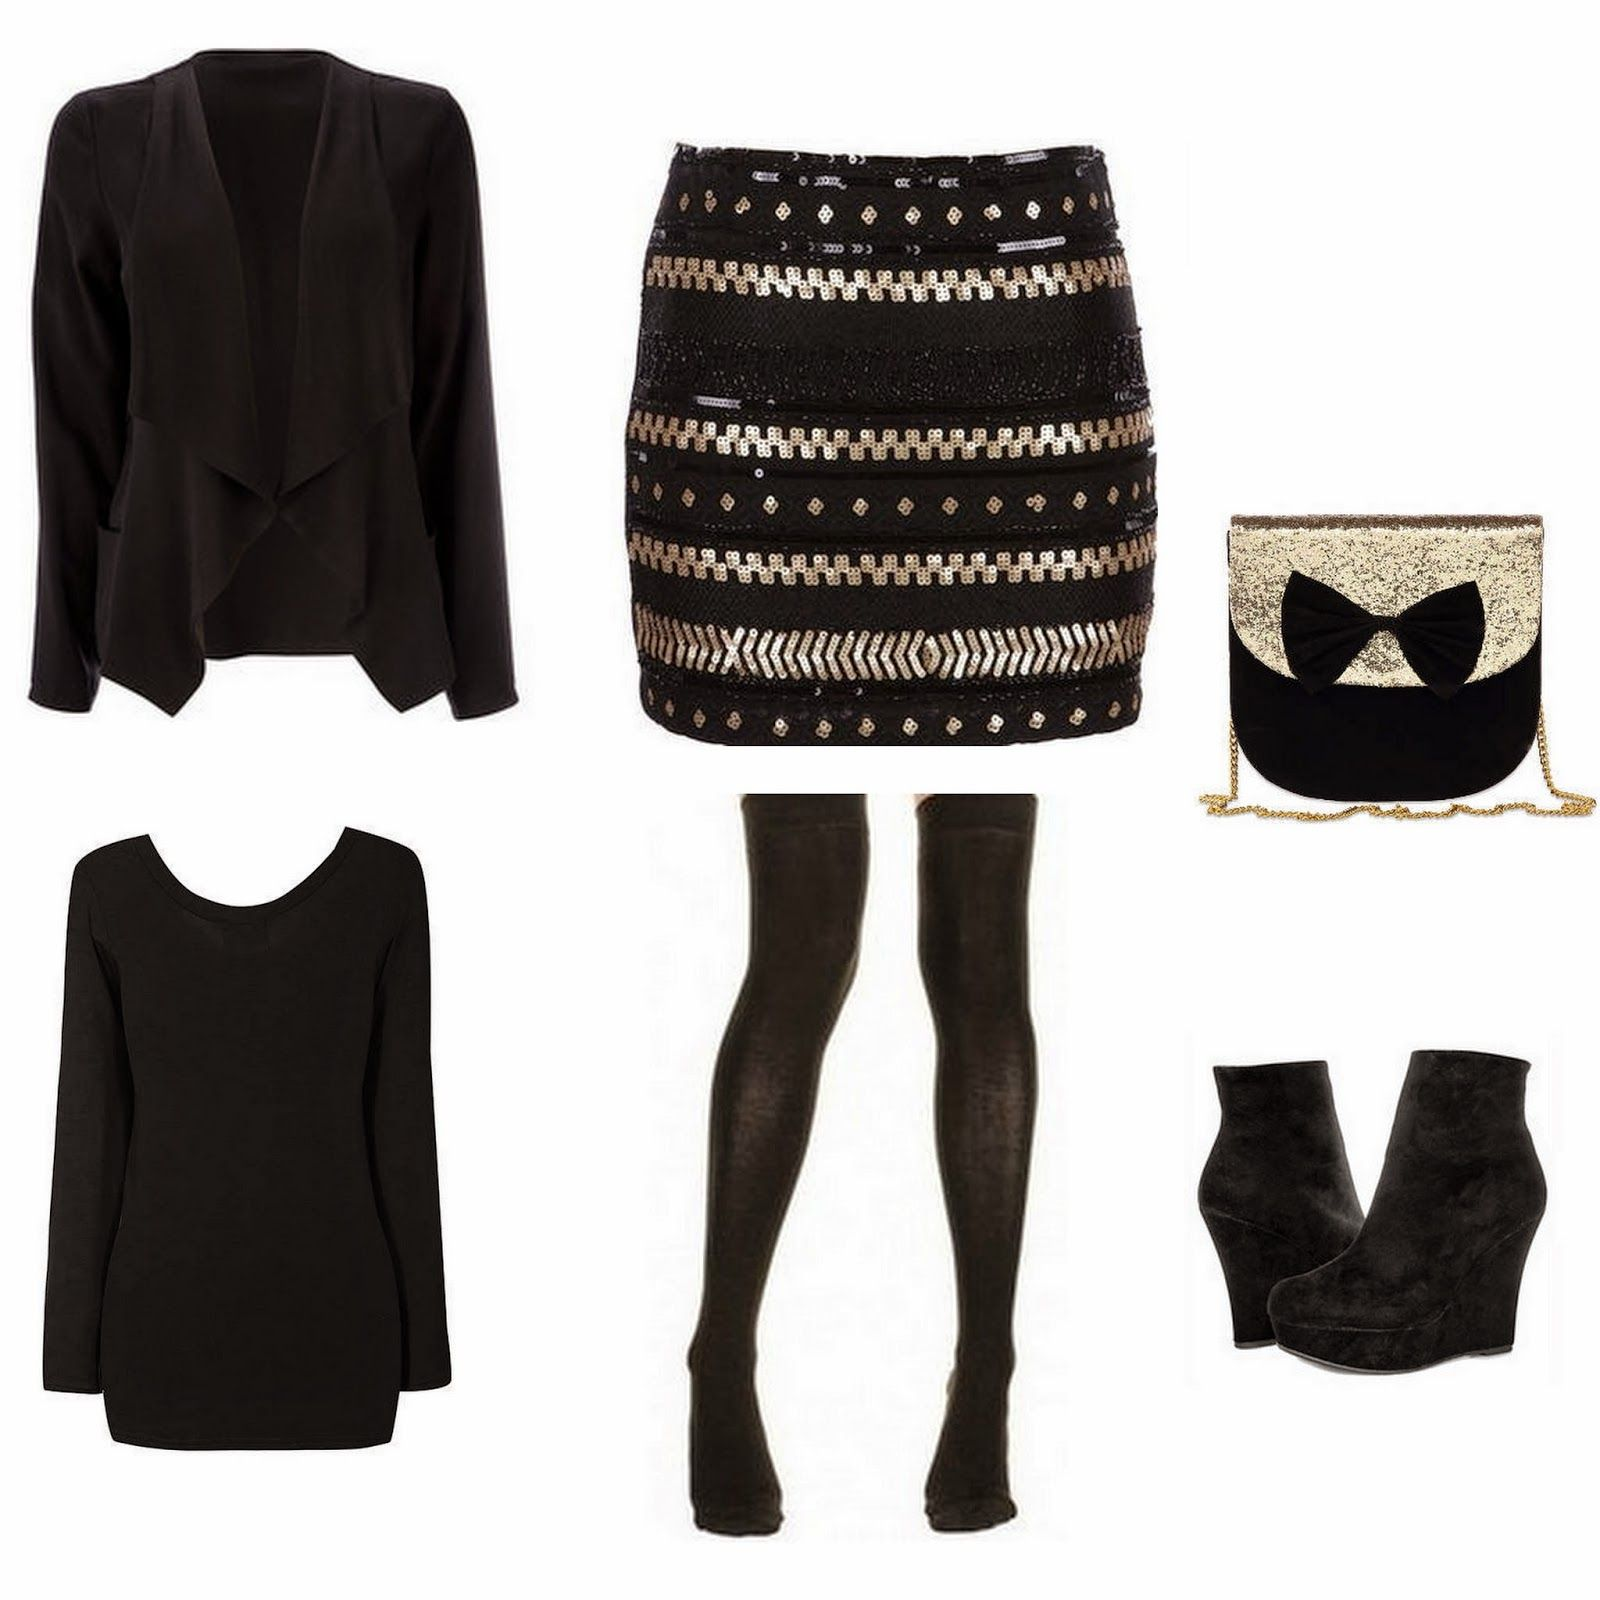 Outfit Ideas for Party Season 2014 !!! #outfitideas #partyseason #partyoutfit #party